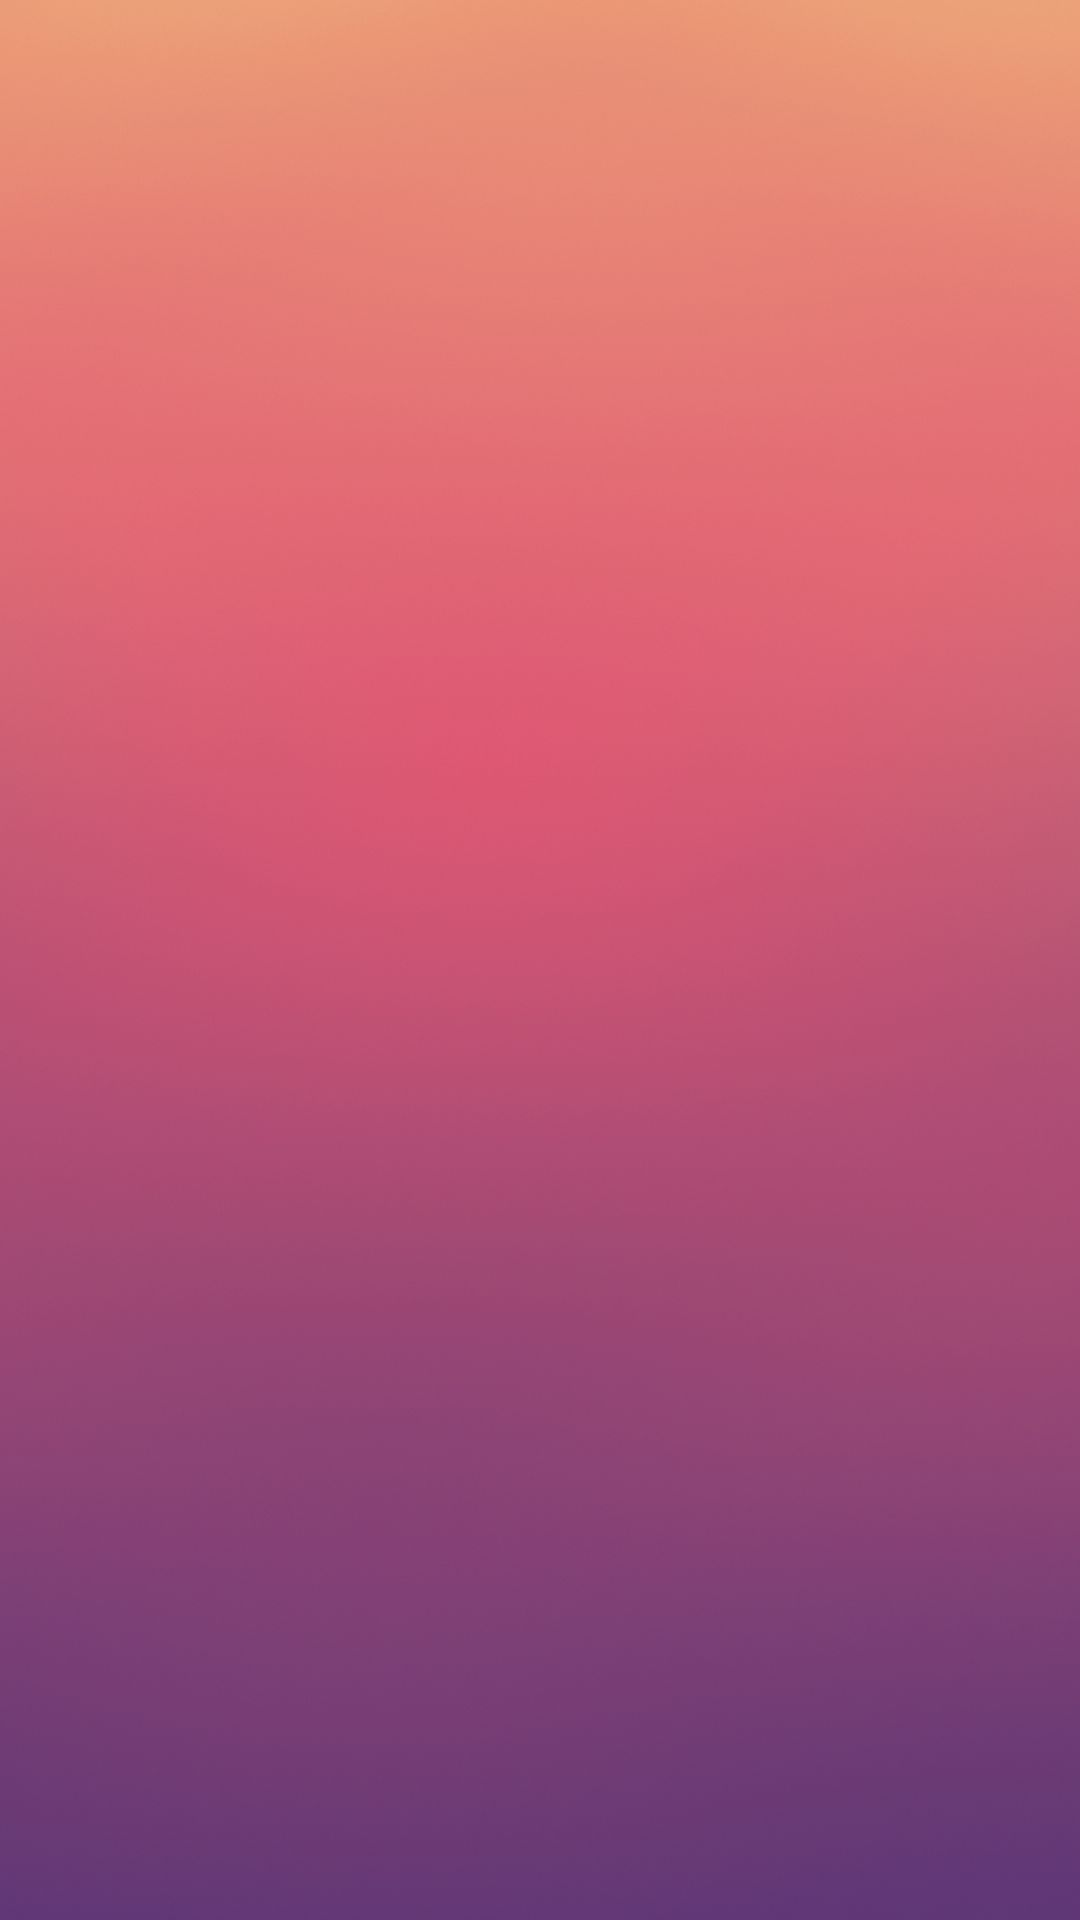 Abstract mauve  Best htc one wallpapers free and easy to